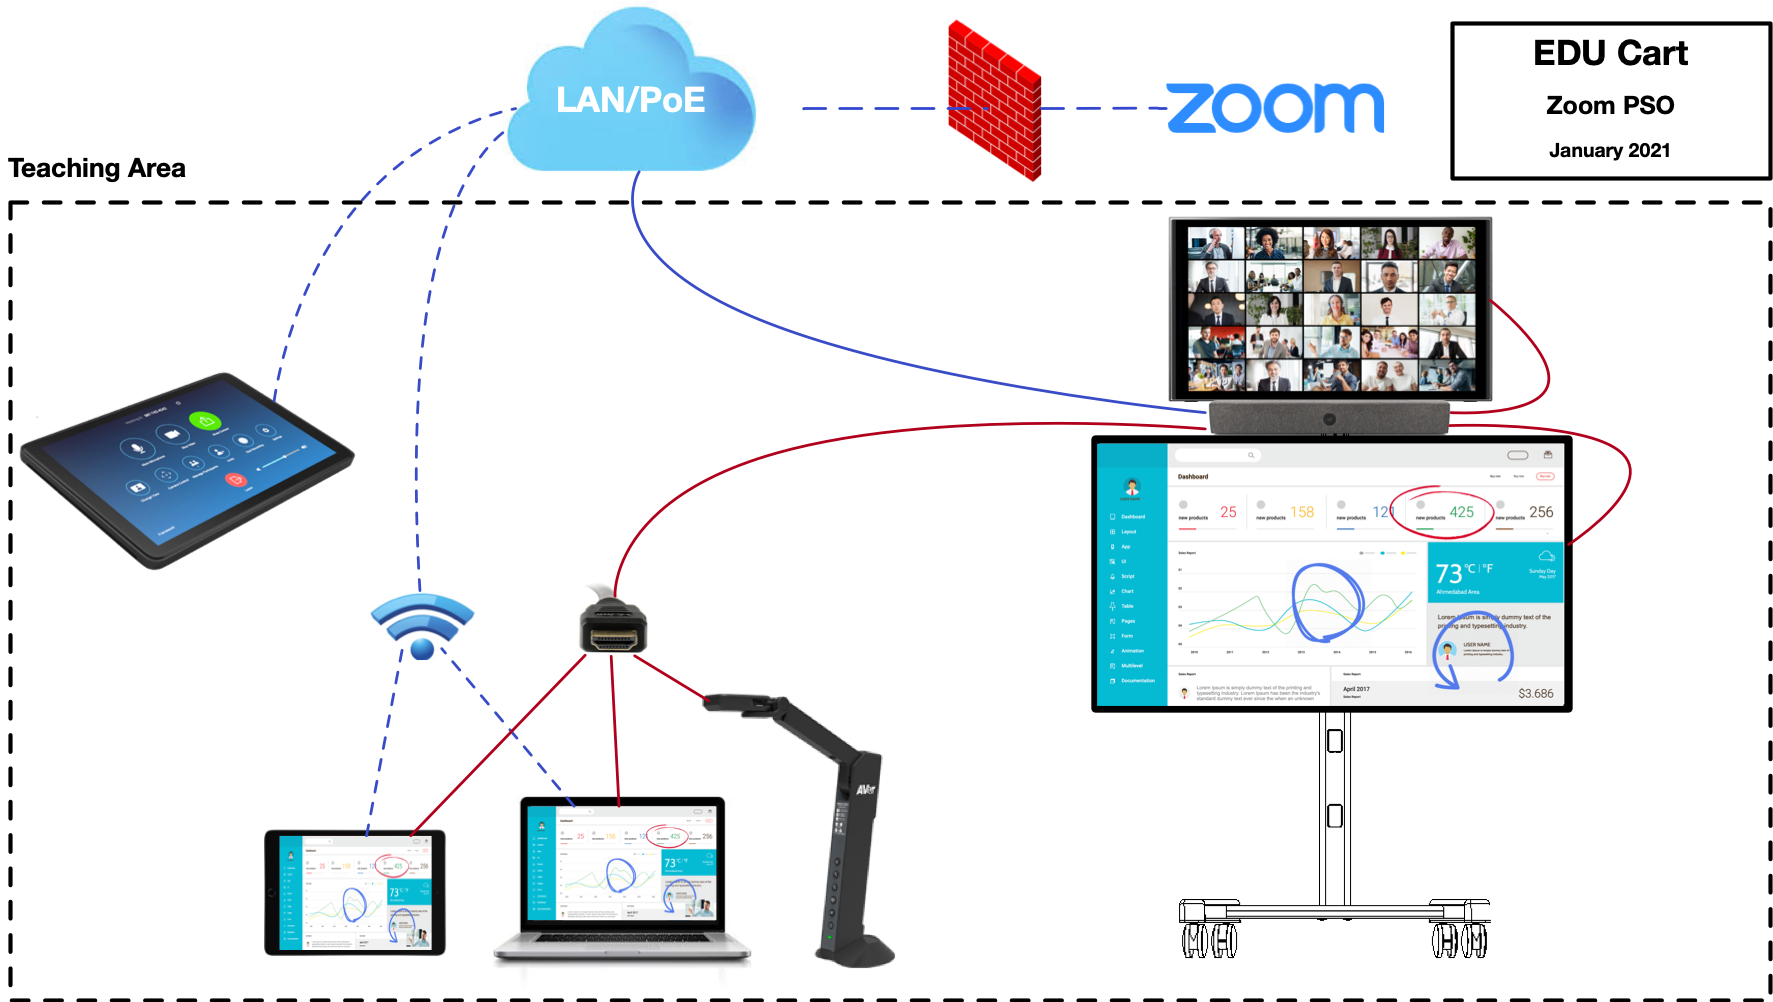 Pictorial_Schematic_-_Zoom_Rooms_Education_Cart_System.png